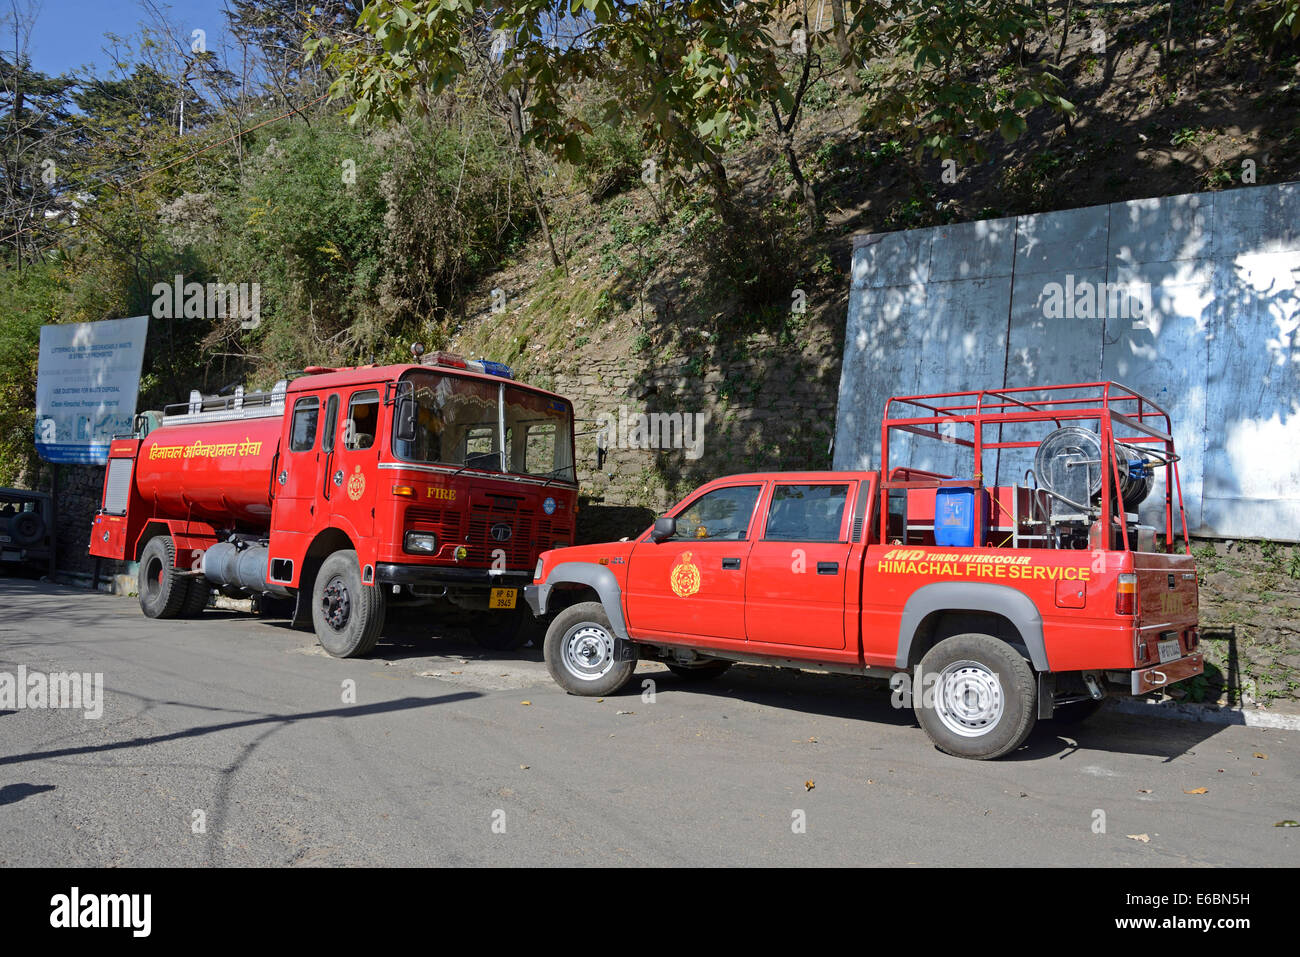 Twio Indian fire appliances made by Tata in Shimla in Shimla,Himachal Pradesh,India, - Stock Image